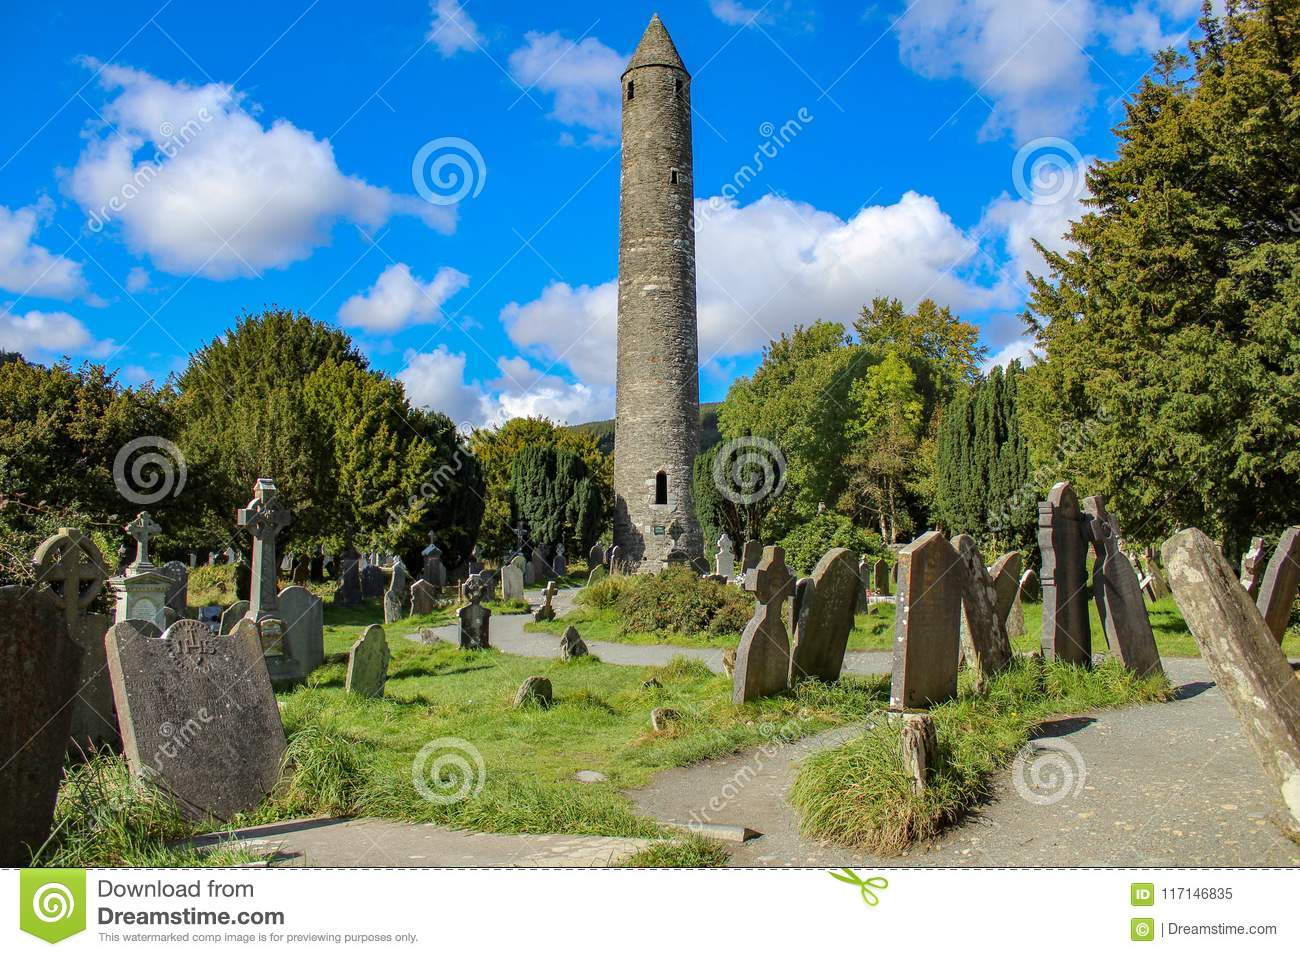 Tower and tombstones at Glendalough.